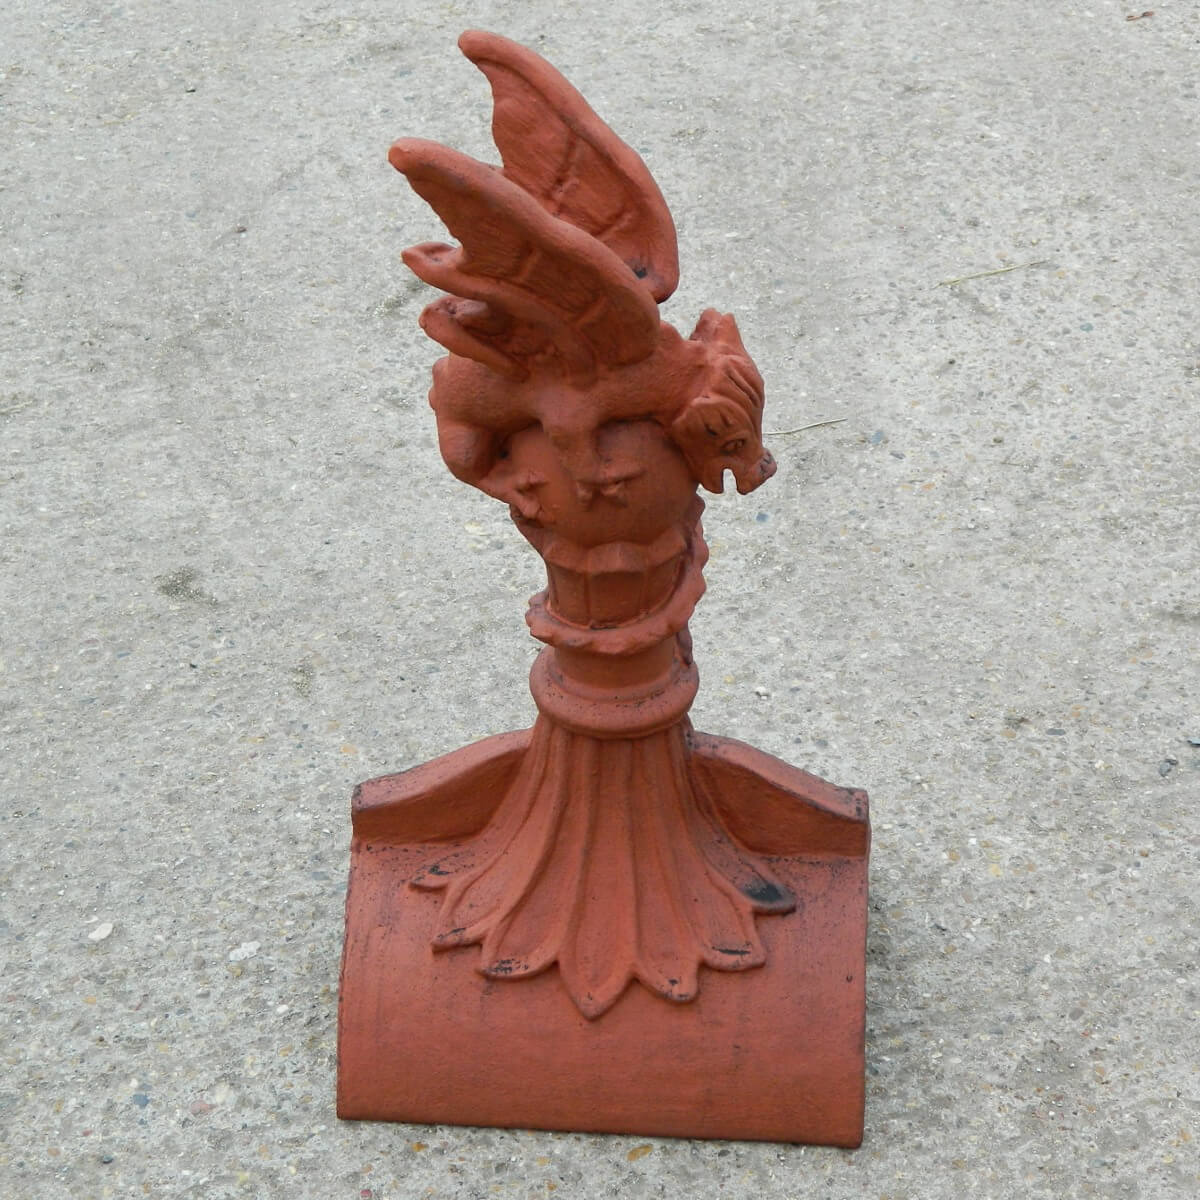 Roofdragon The Premier Roof Dragon And Finial Manufacturers & Dragon Roof Finials Uk - Popular Roof 2017 memphite.com